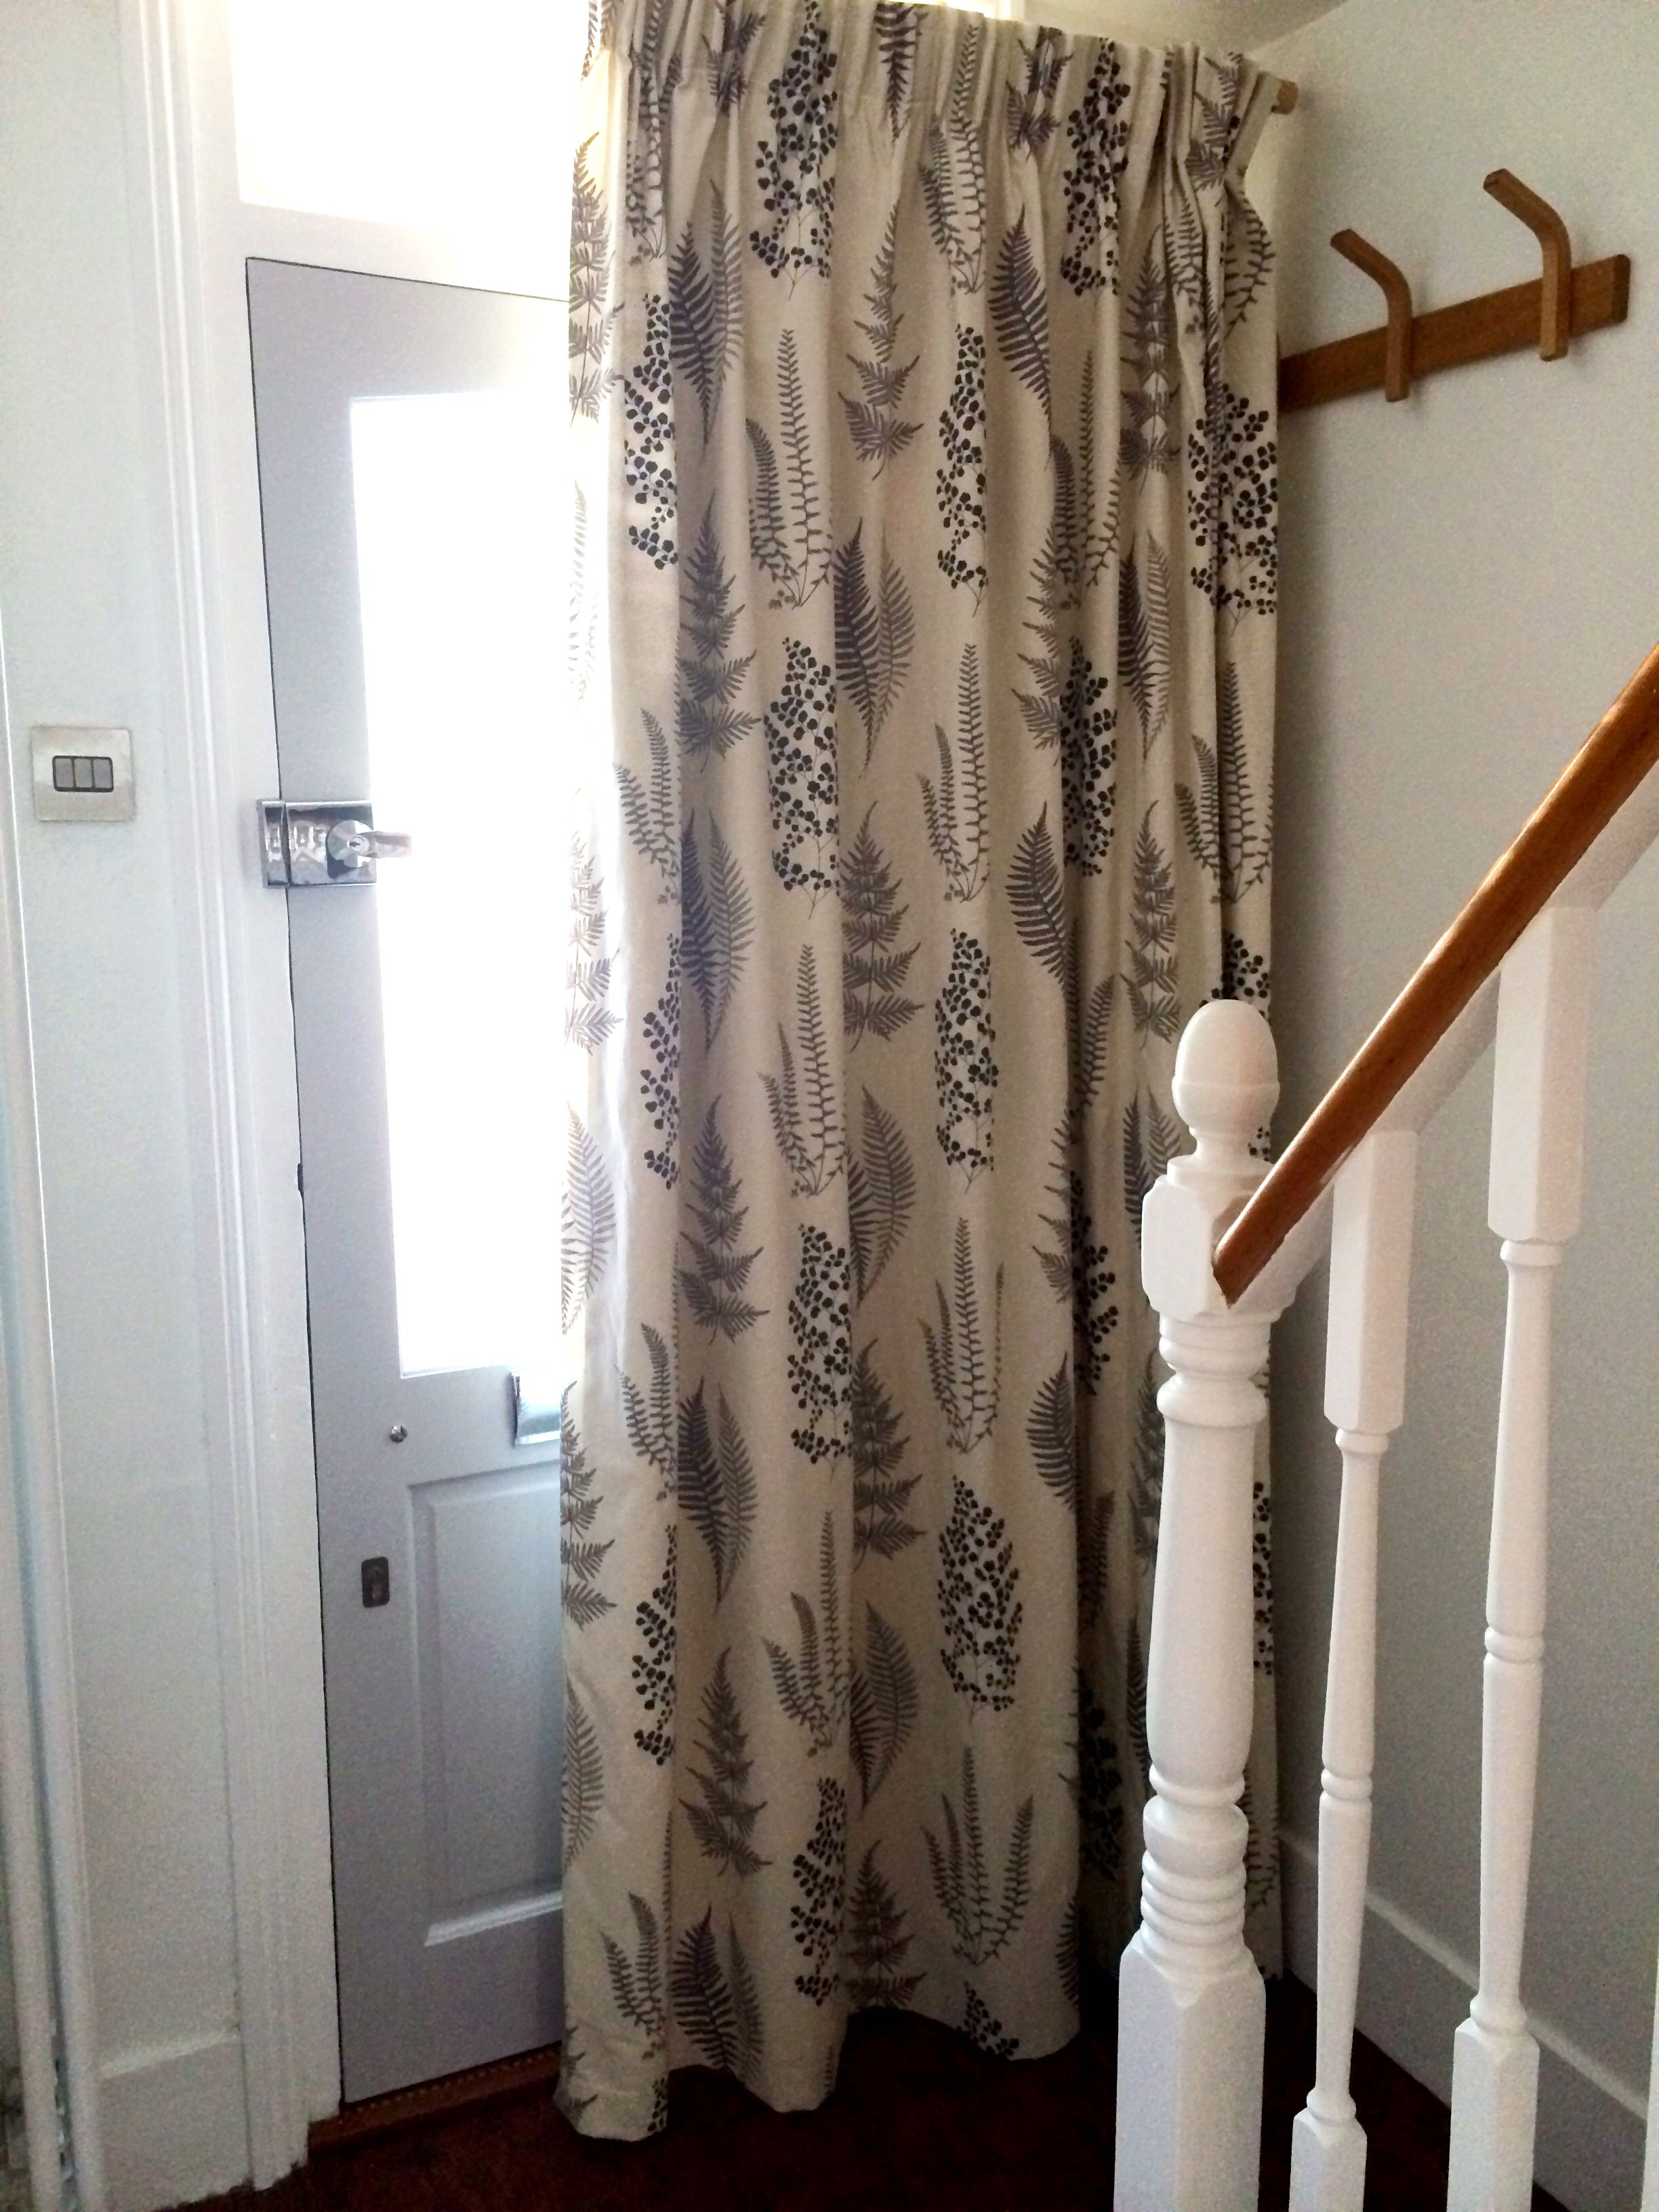 and two fabric room divider corner over brown added tone for curtain living steel window stylish drapes bay balcony windows valances as inspiration rod mid space modern homemade compelling popular designs ideas century brilliant treatment in well curtains classy views stainless